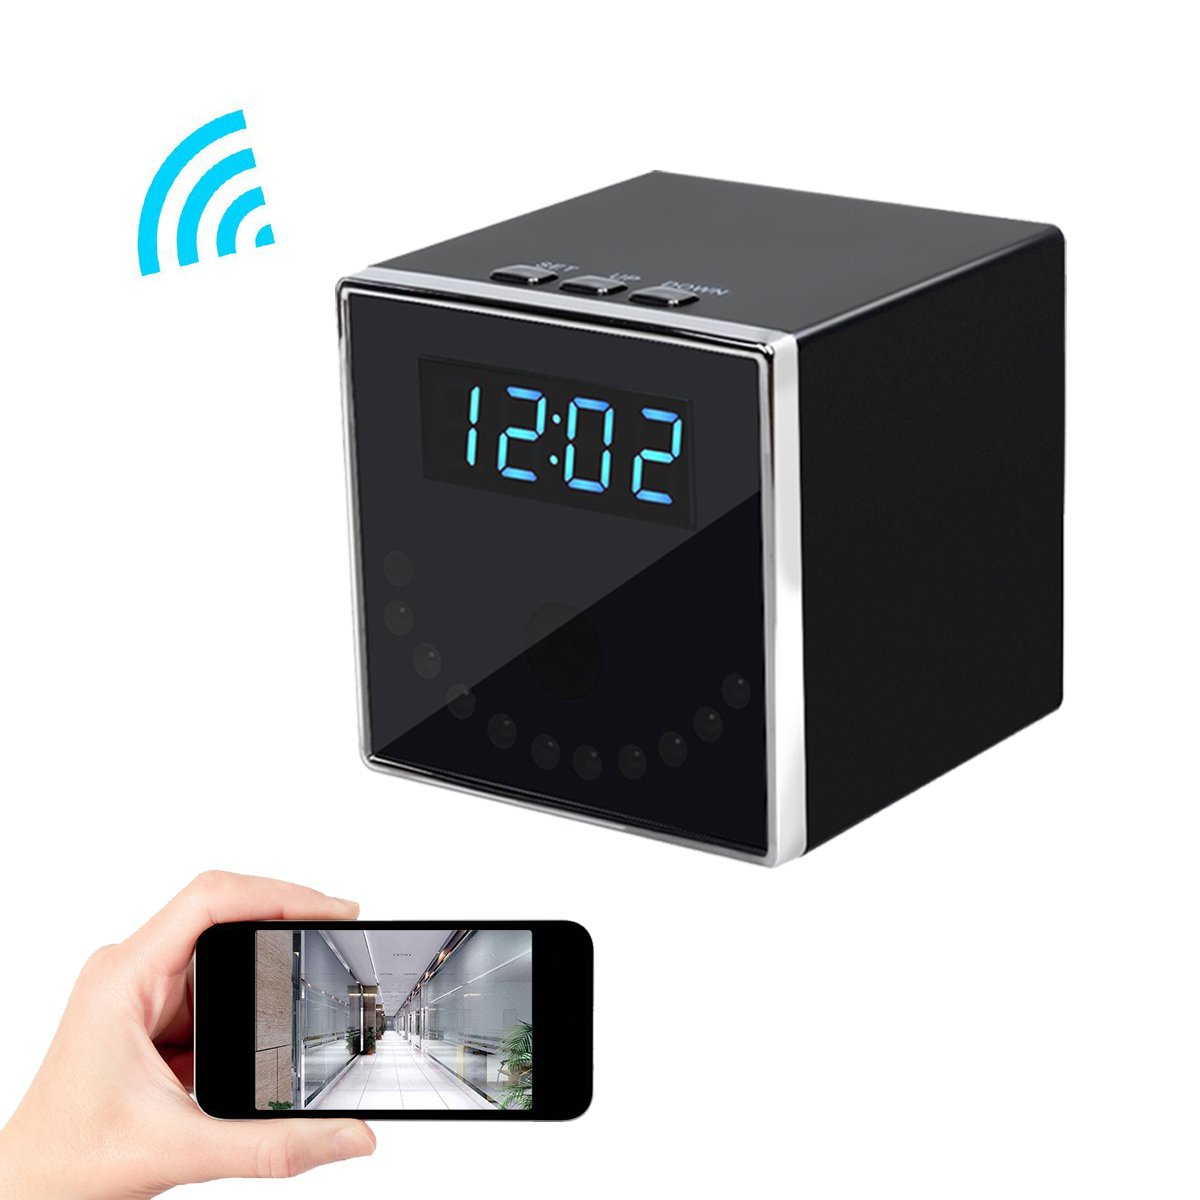 Amazon wireless spy hidden camera corprit 1080p wifi home amazon wireless spy hidden camera corprit 1080p wifi home security camera table clock nanny cam cell phones accessories amipublicfo Images